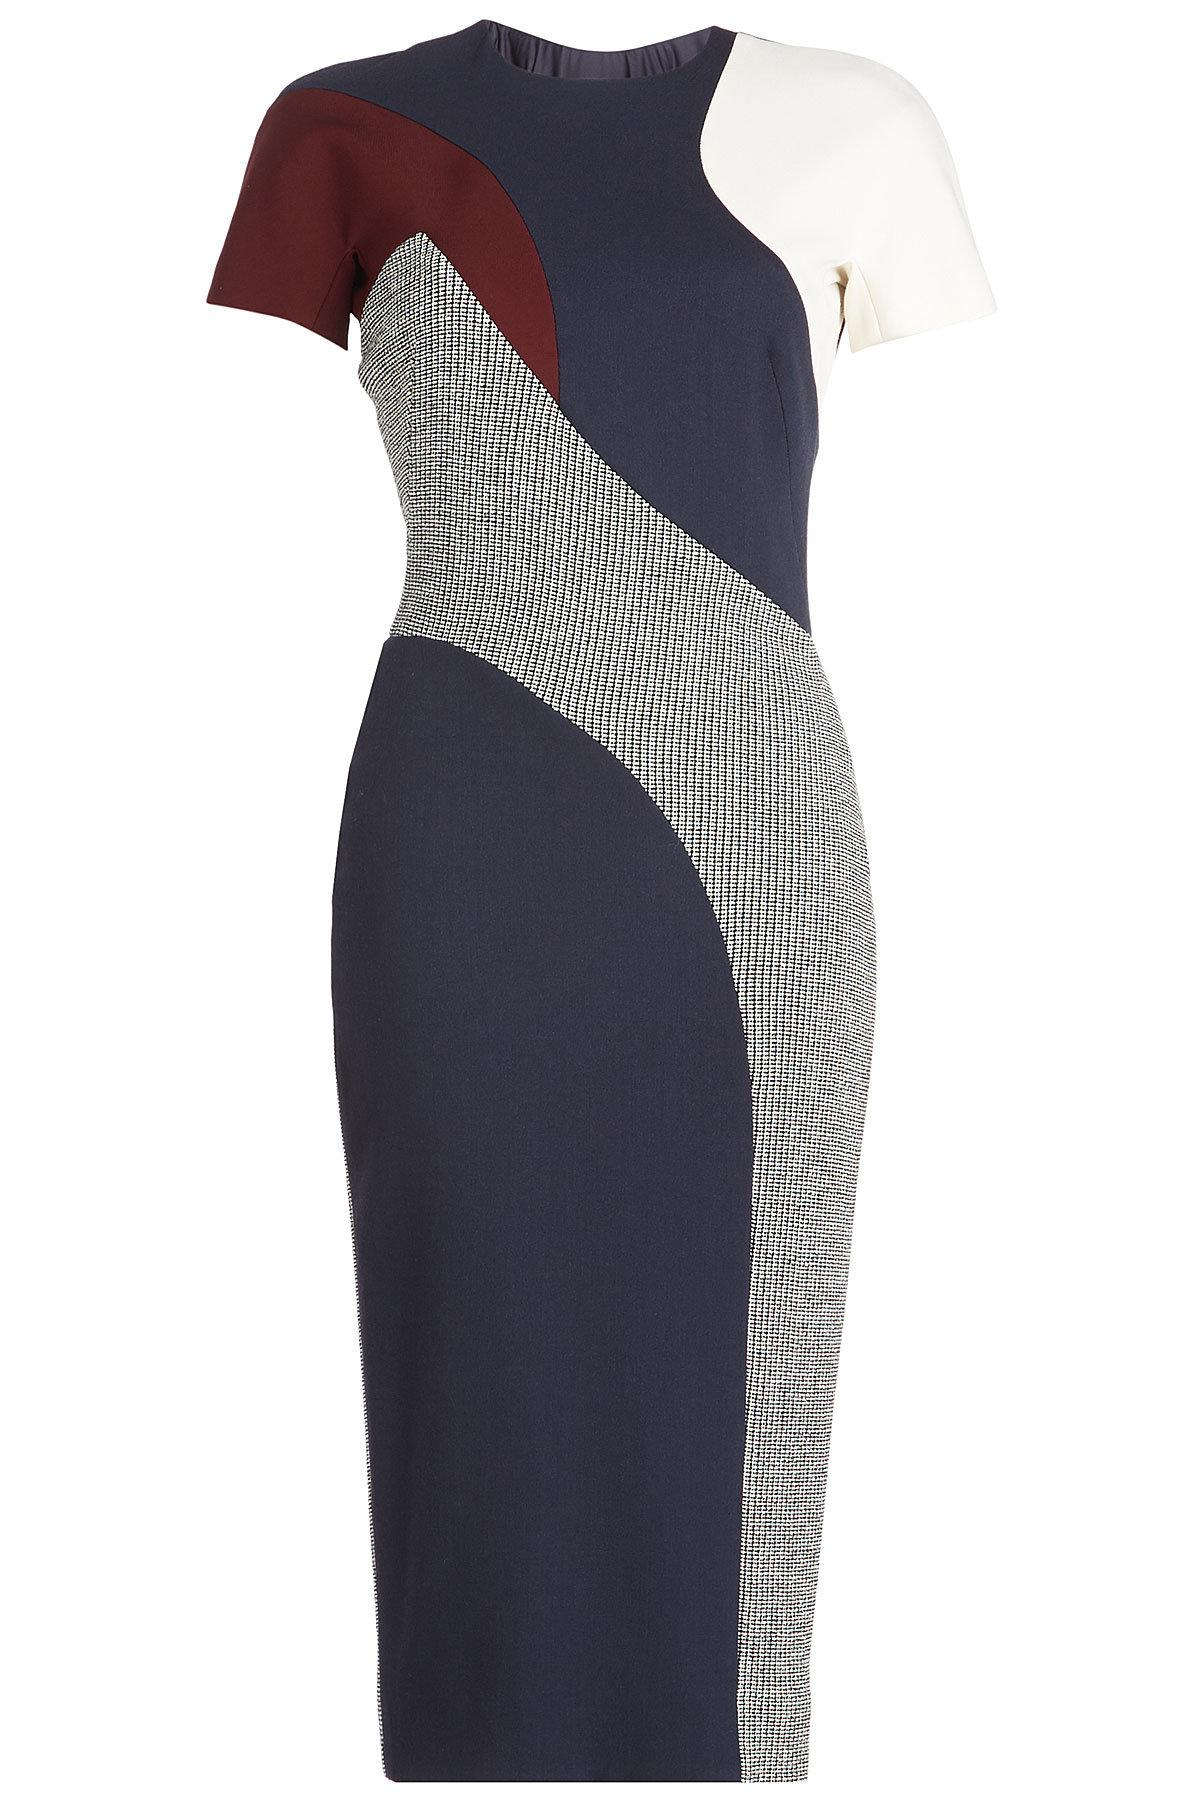 Victoria Beckham Printed Dress With Wool In Multicolored